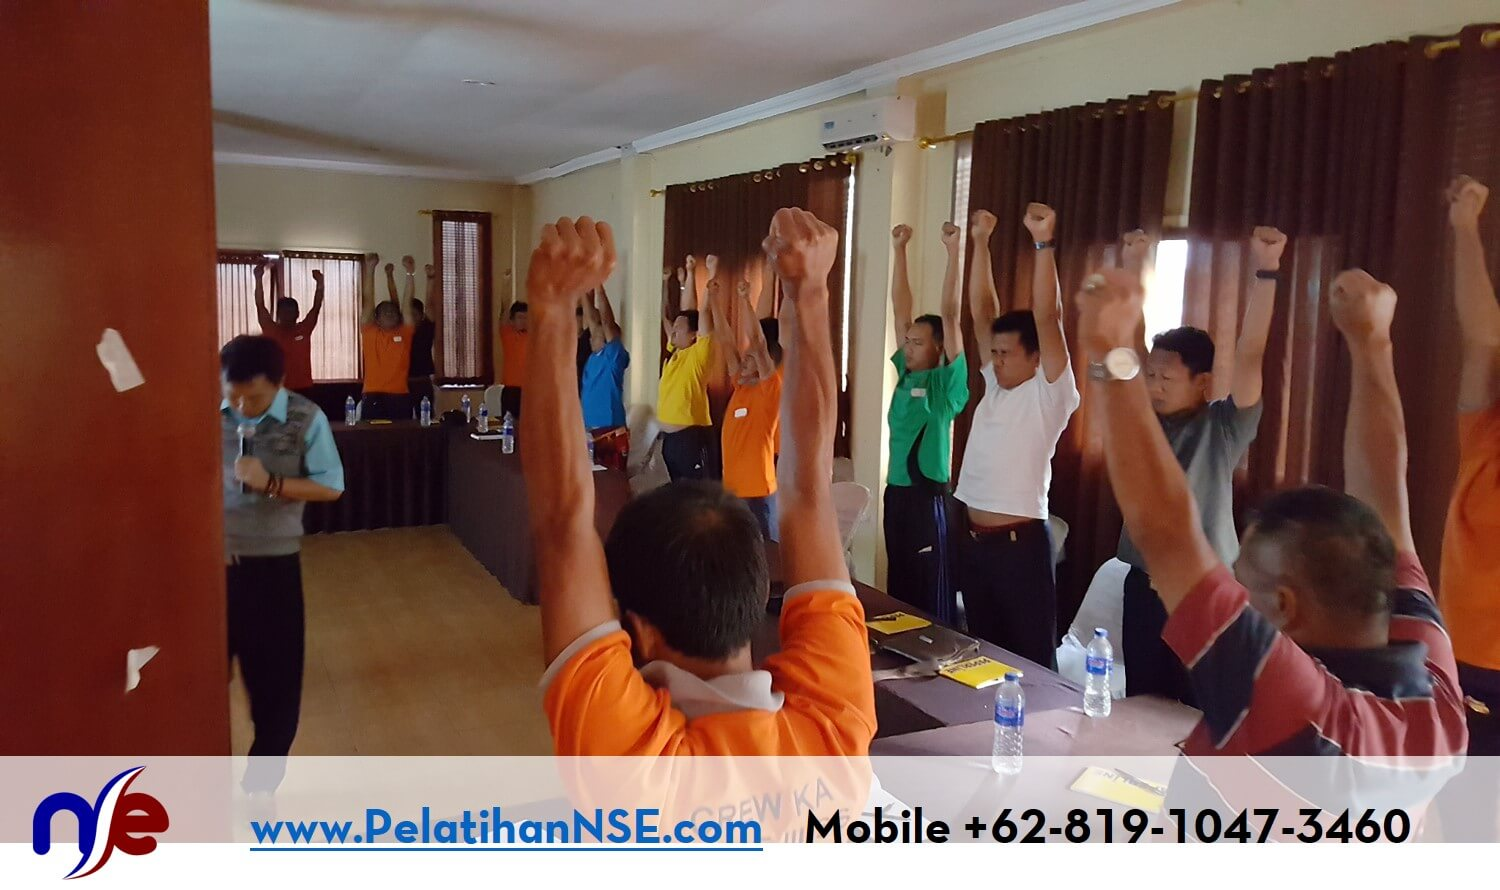 NSE Basic Self Empowerment KAI 29-30 September 2016 - Speedy Relaxation Technique sambil Berdiri